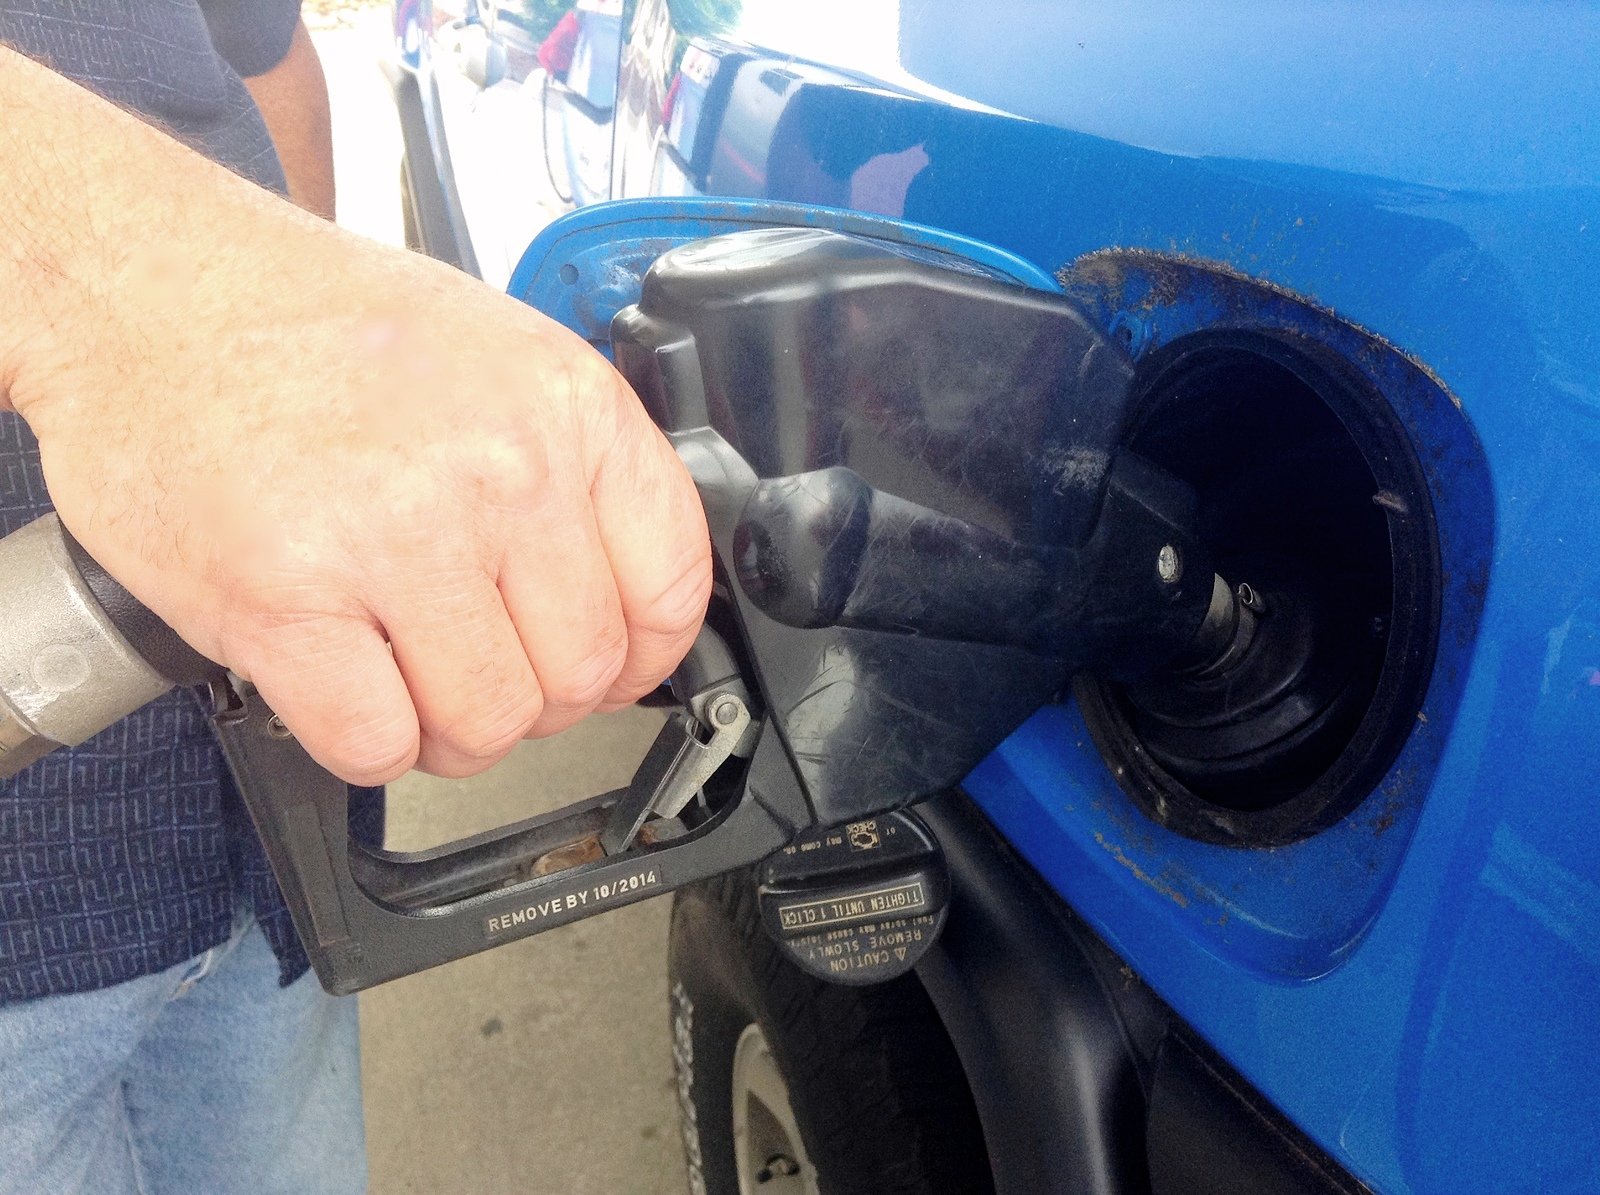 Oregon State Fire Marshal suspends self-service gas regulations